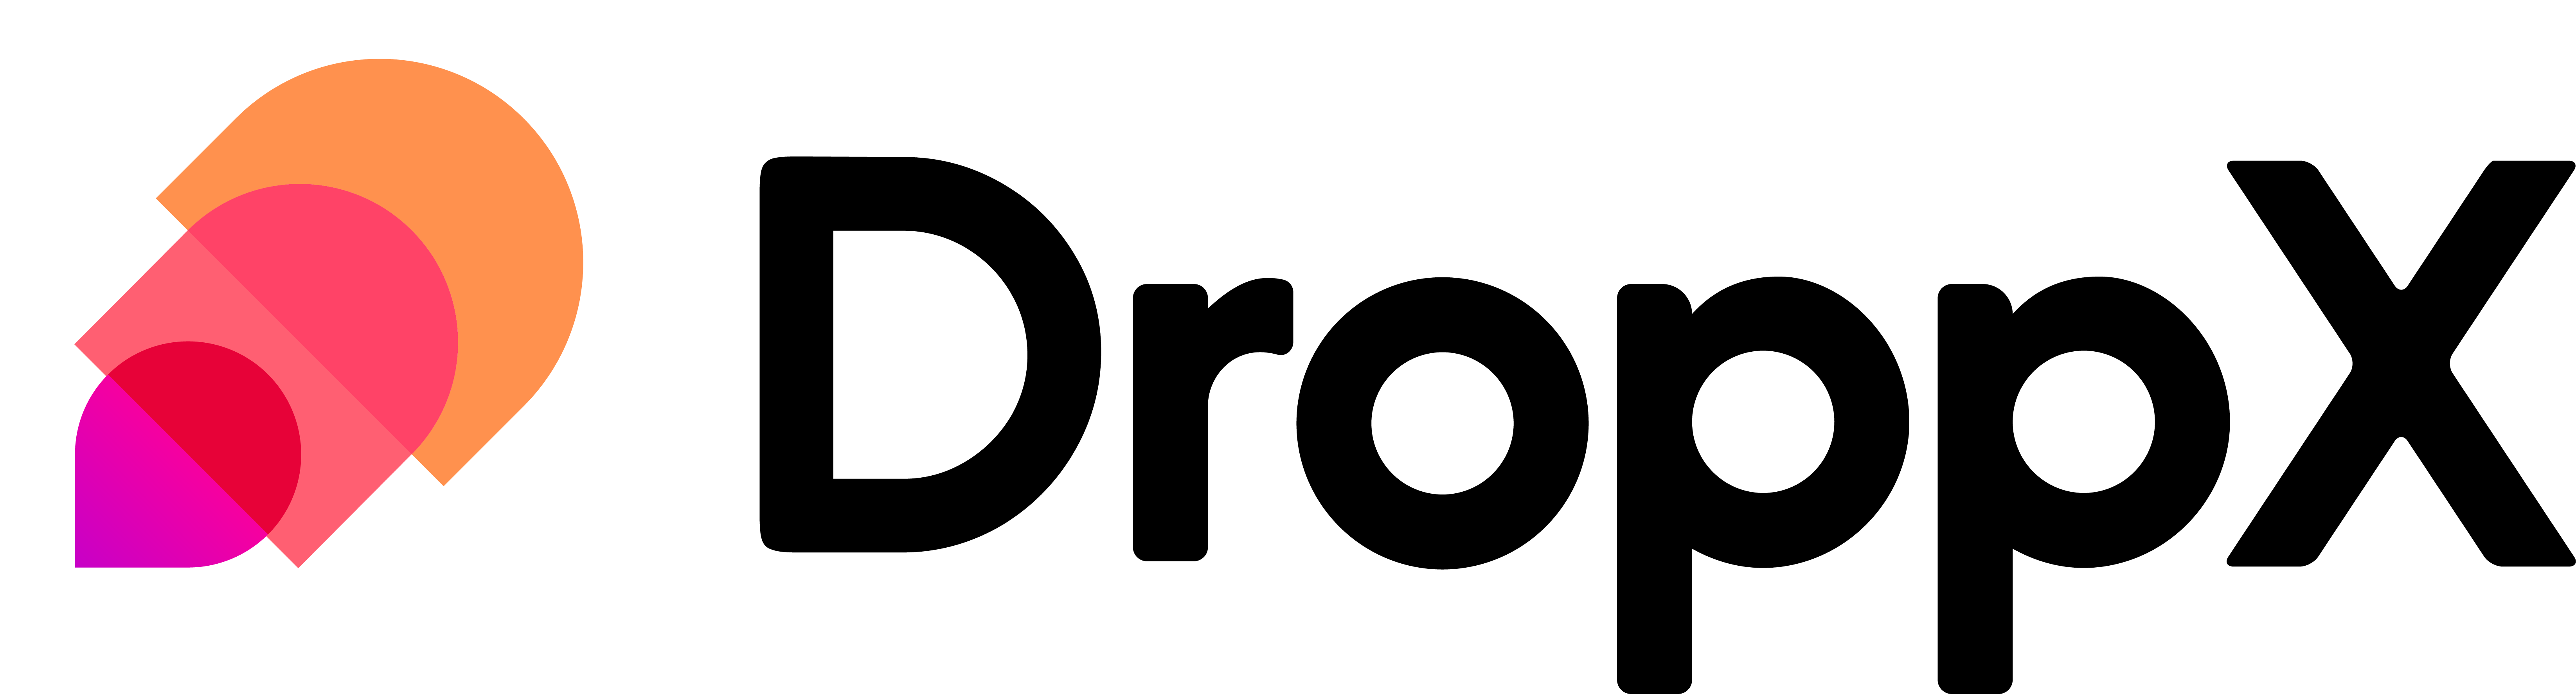 Black logo with transparent backgroung